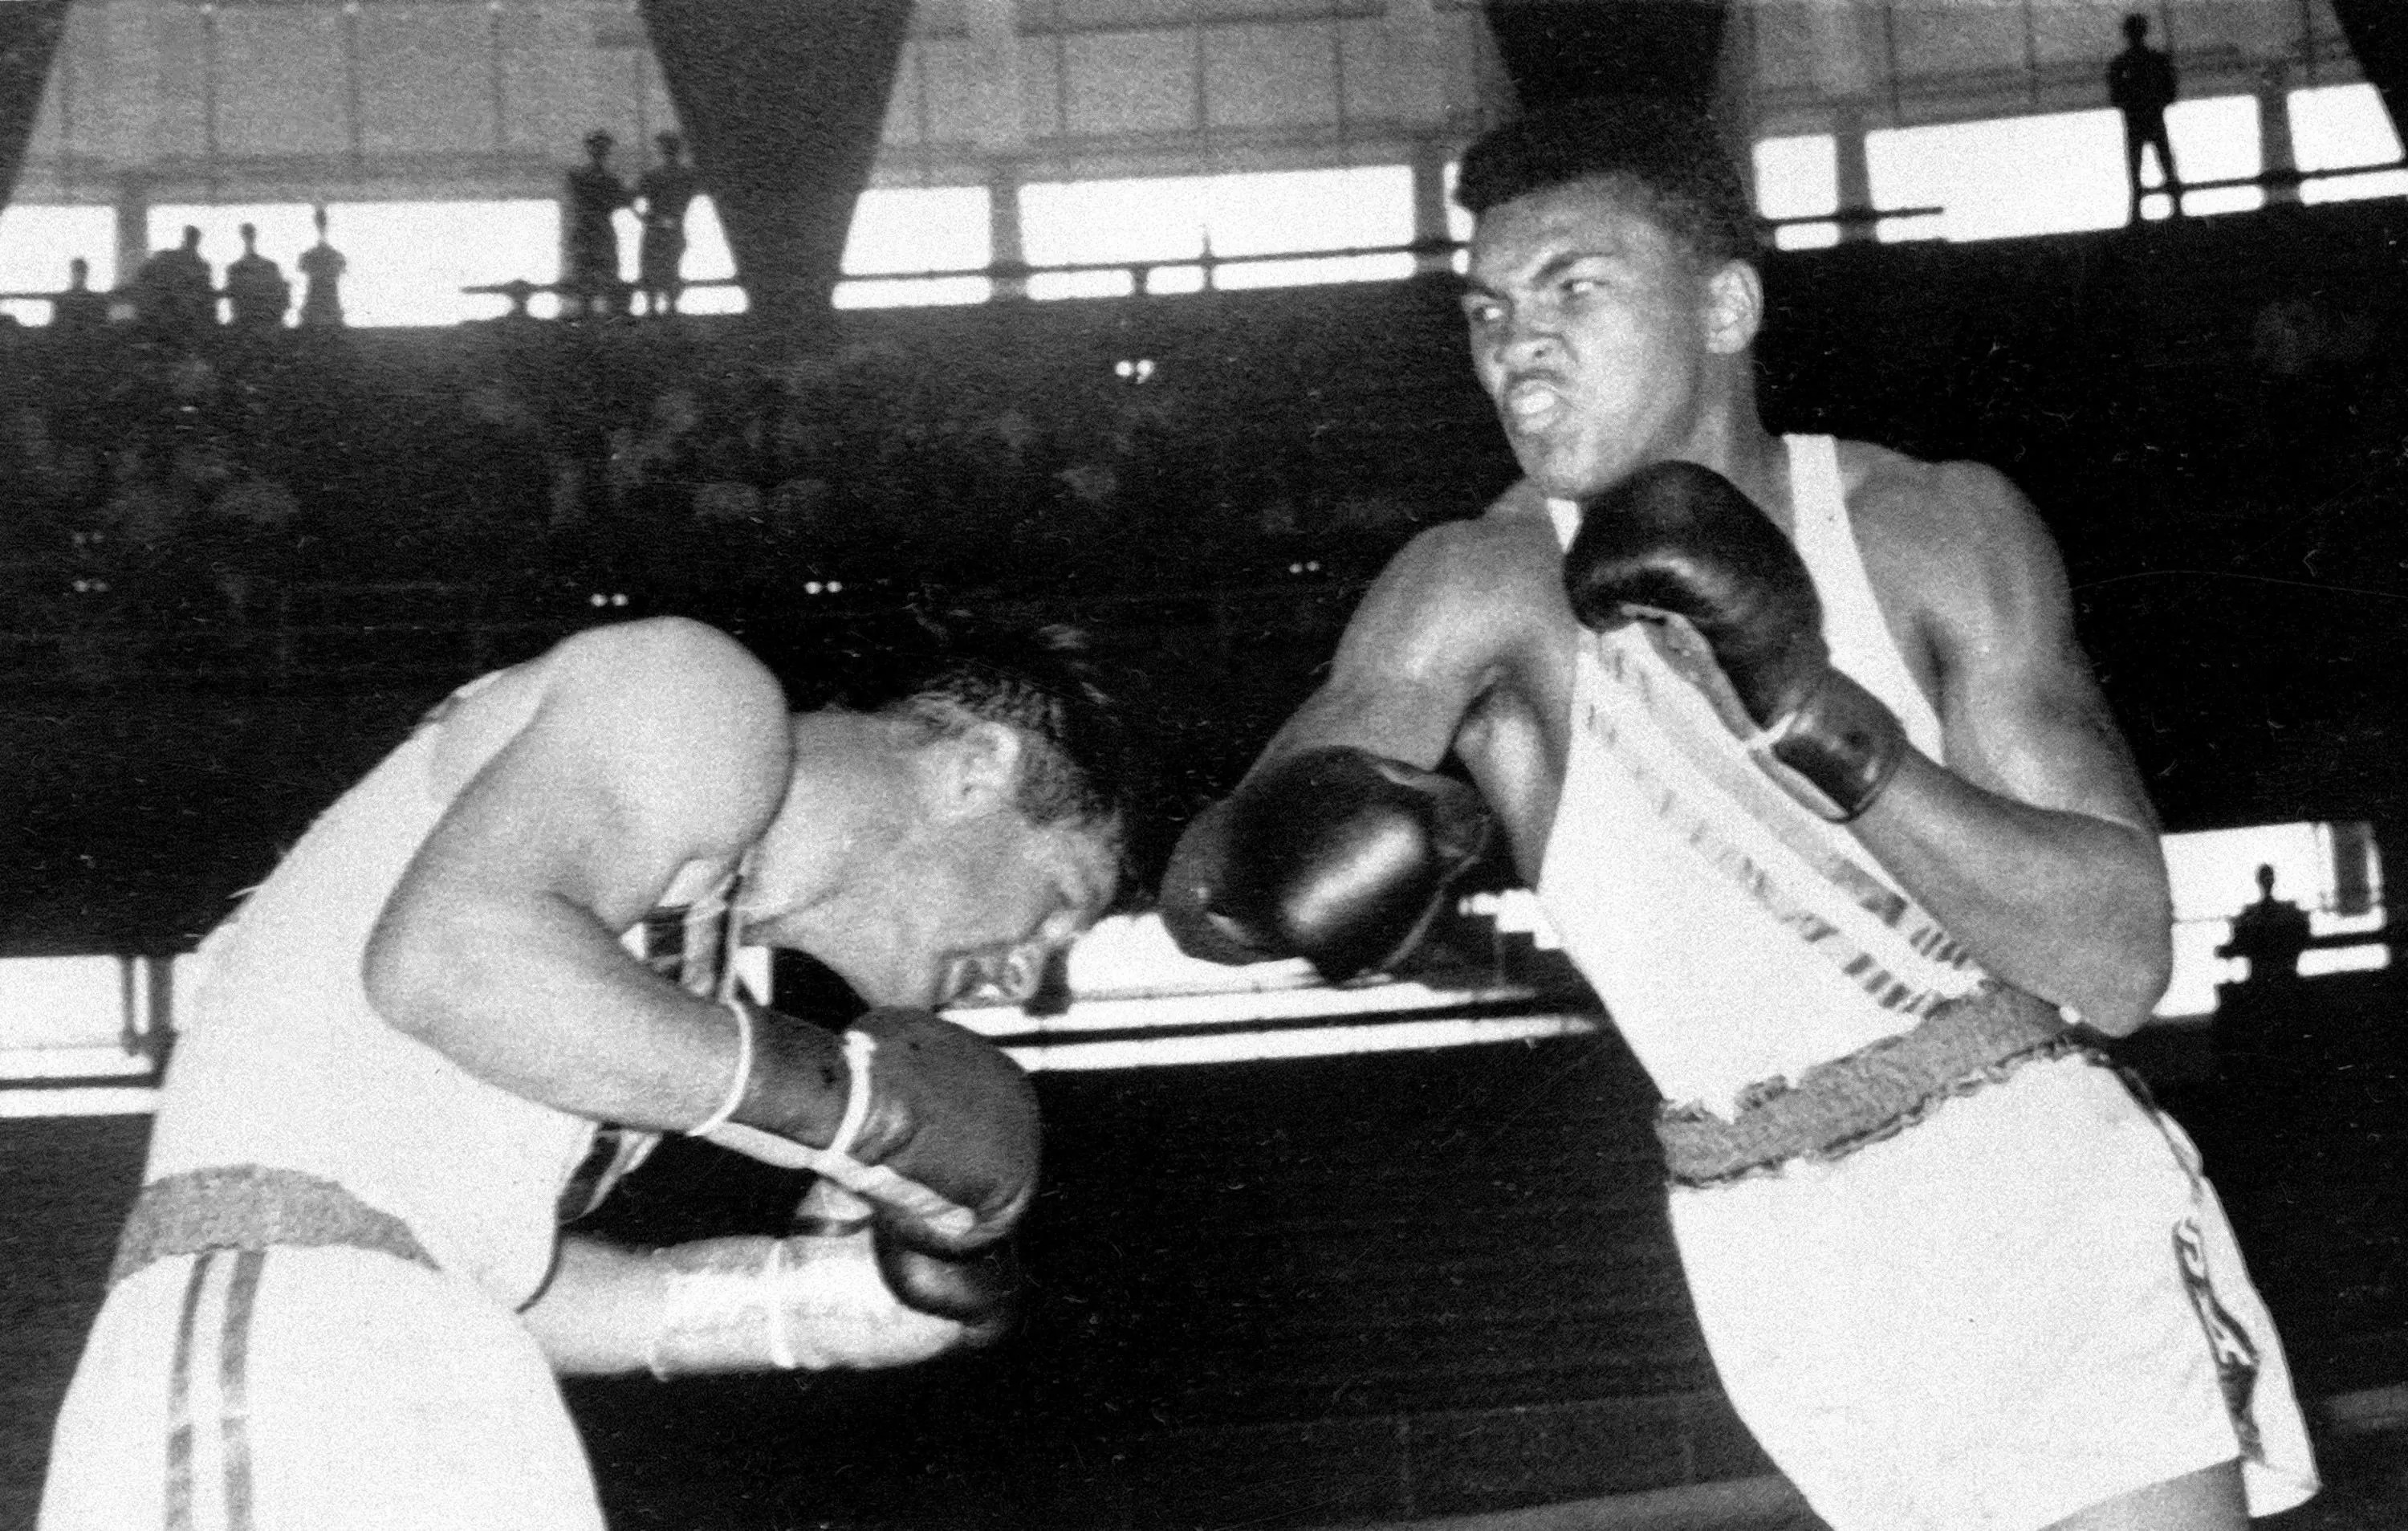 Rome, 1960: An 18-year-old Cassius Clay — later known as Muhammad Ali — from Louisville won gold at the 1960 Olympics before going on to become a world champion. These games were the first to be commercially broadcast and also the first to feature a major doping scandal. Danish cyclist Knud Enemark Jensen collapsed during his race under the influence of Roniacol and died the same day.